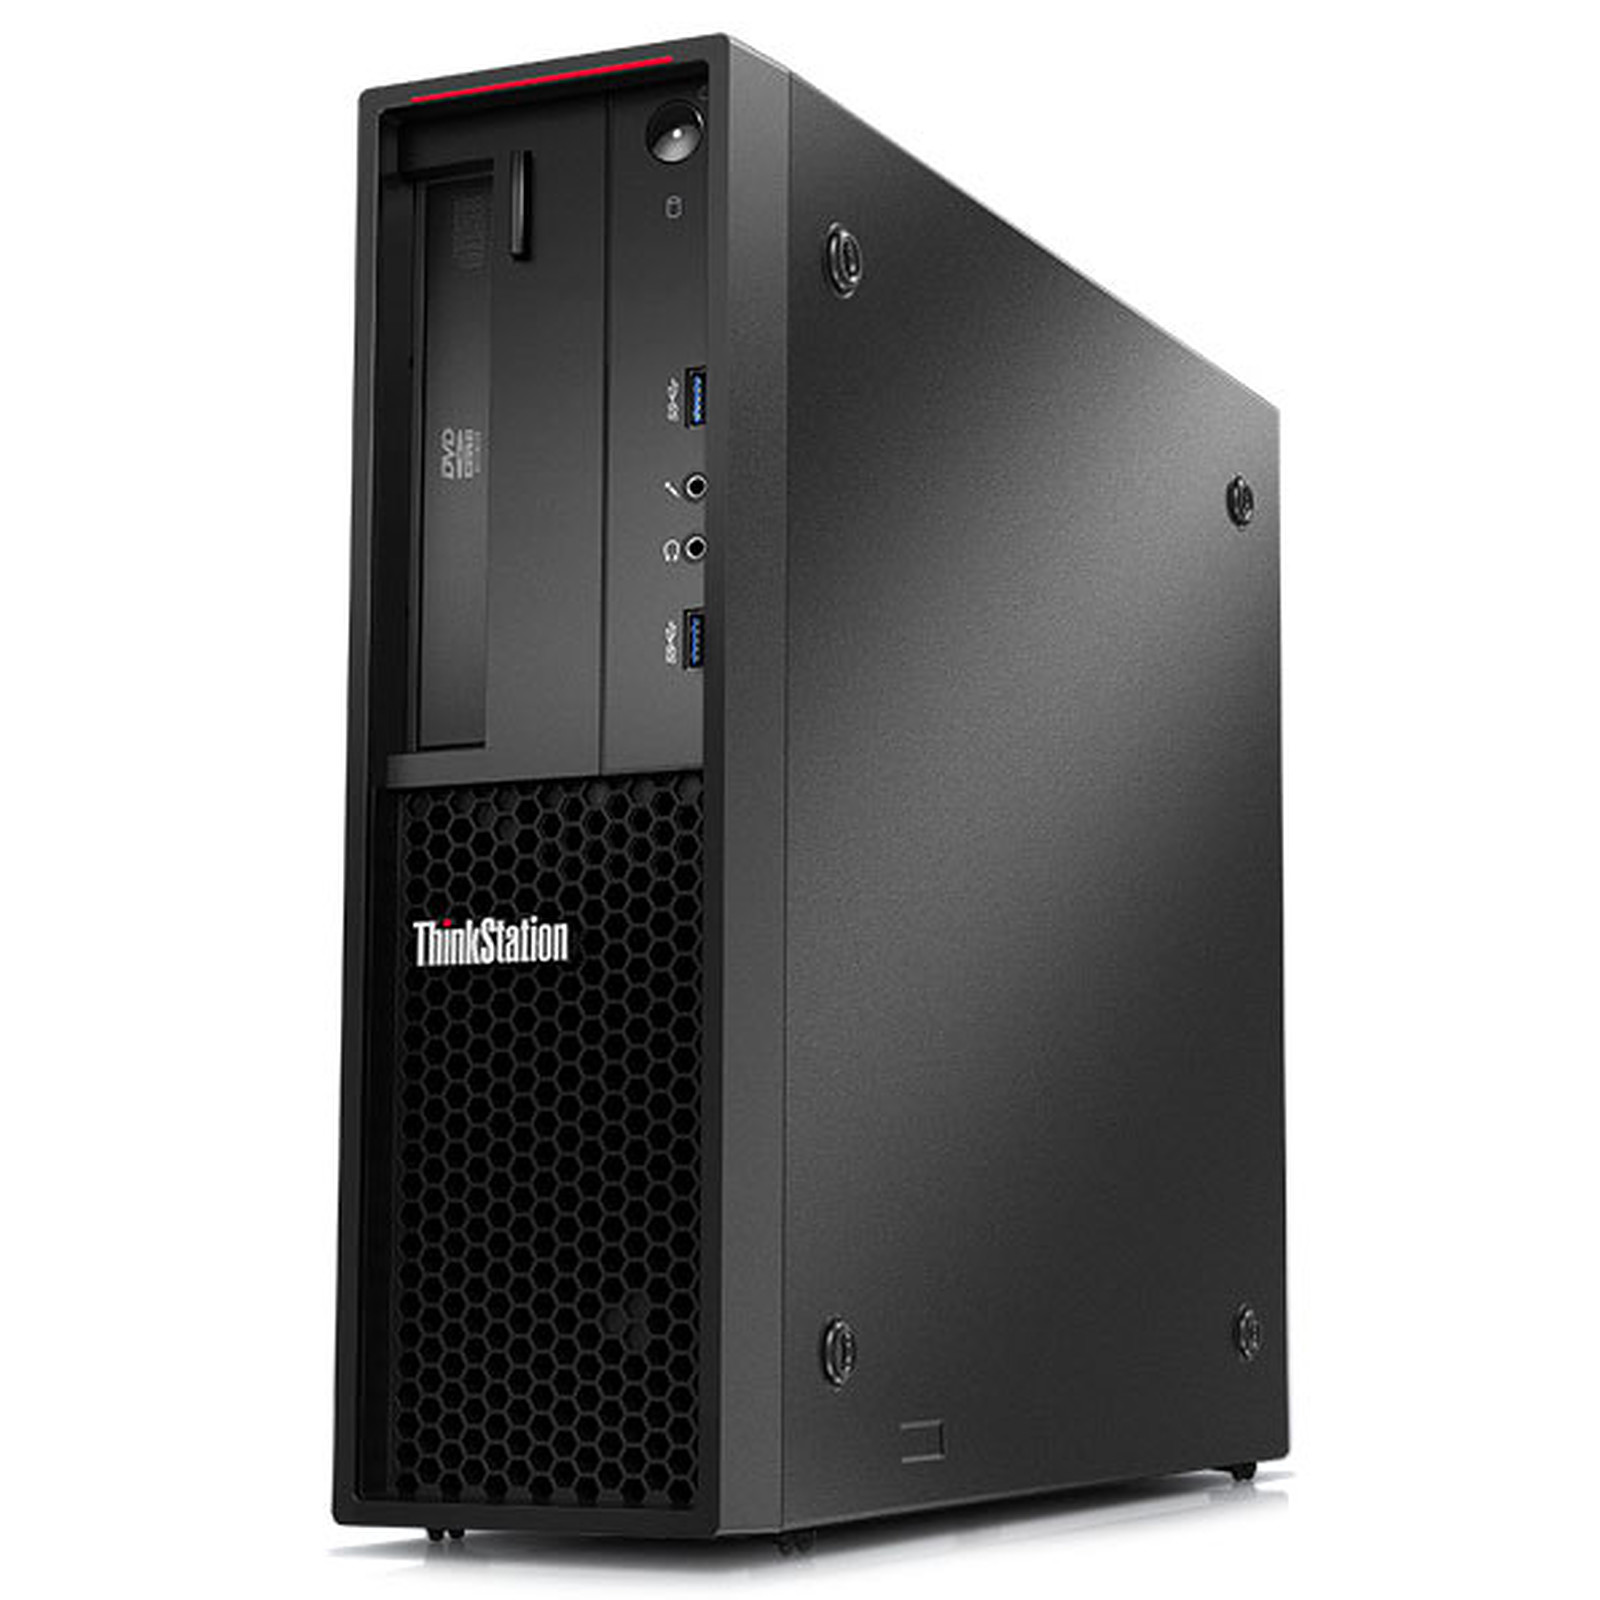 lenovo thinkstation p310 compact 30av000mfr pc de bureau lenovo sur. Black Bedroom Furniture Sets. Home Design Ideas